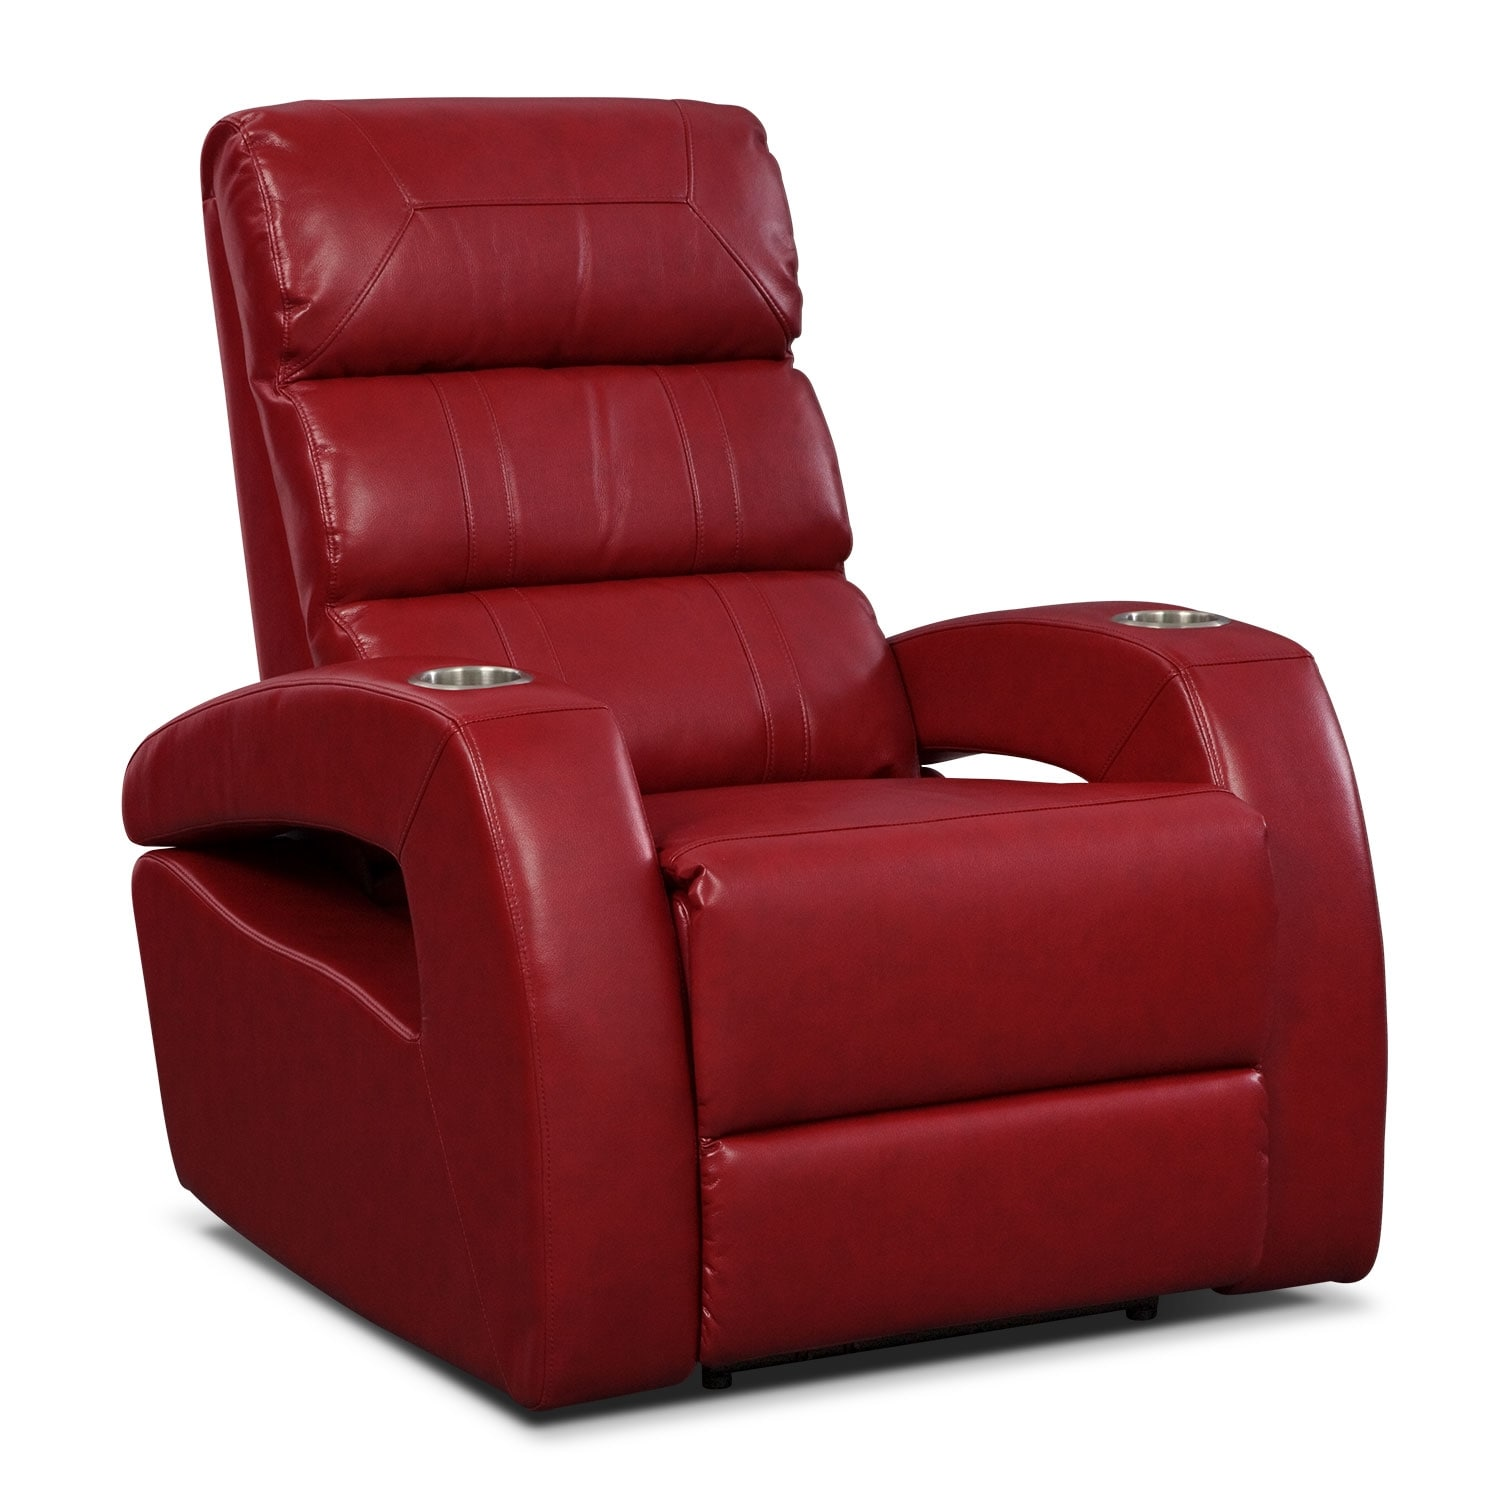 Gemini III Power Recliner